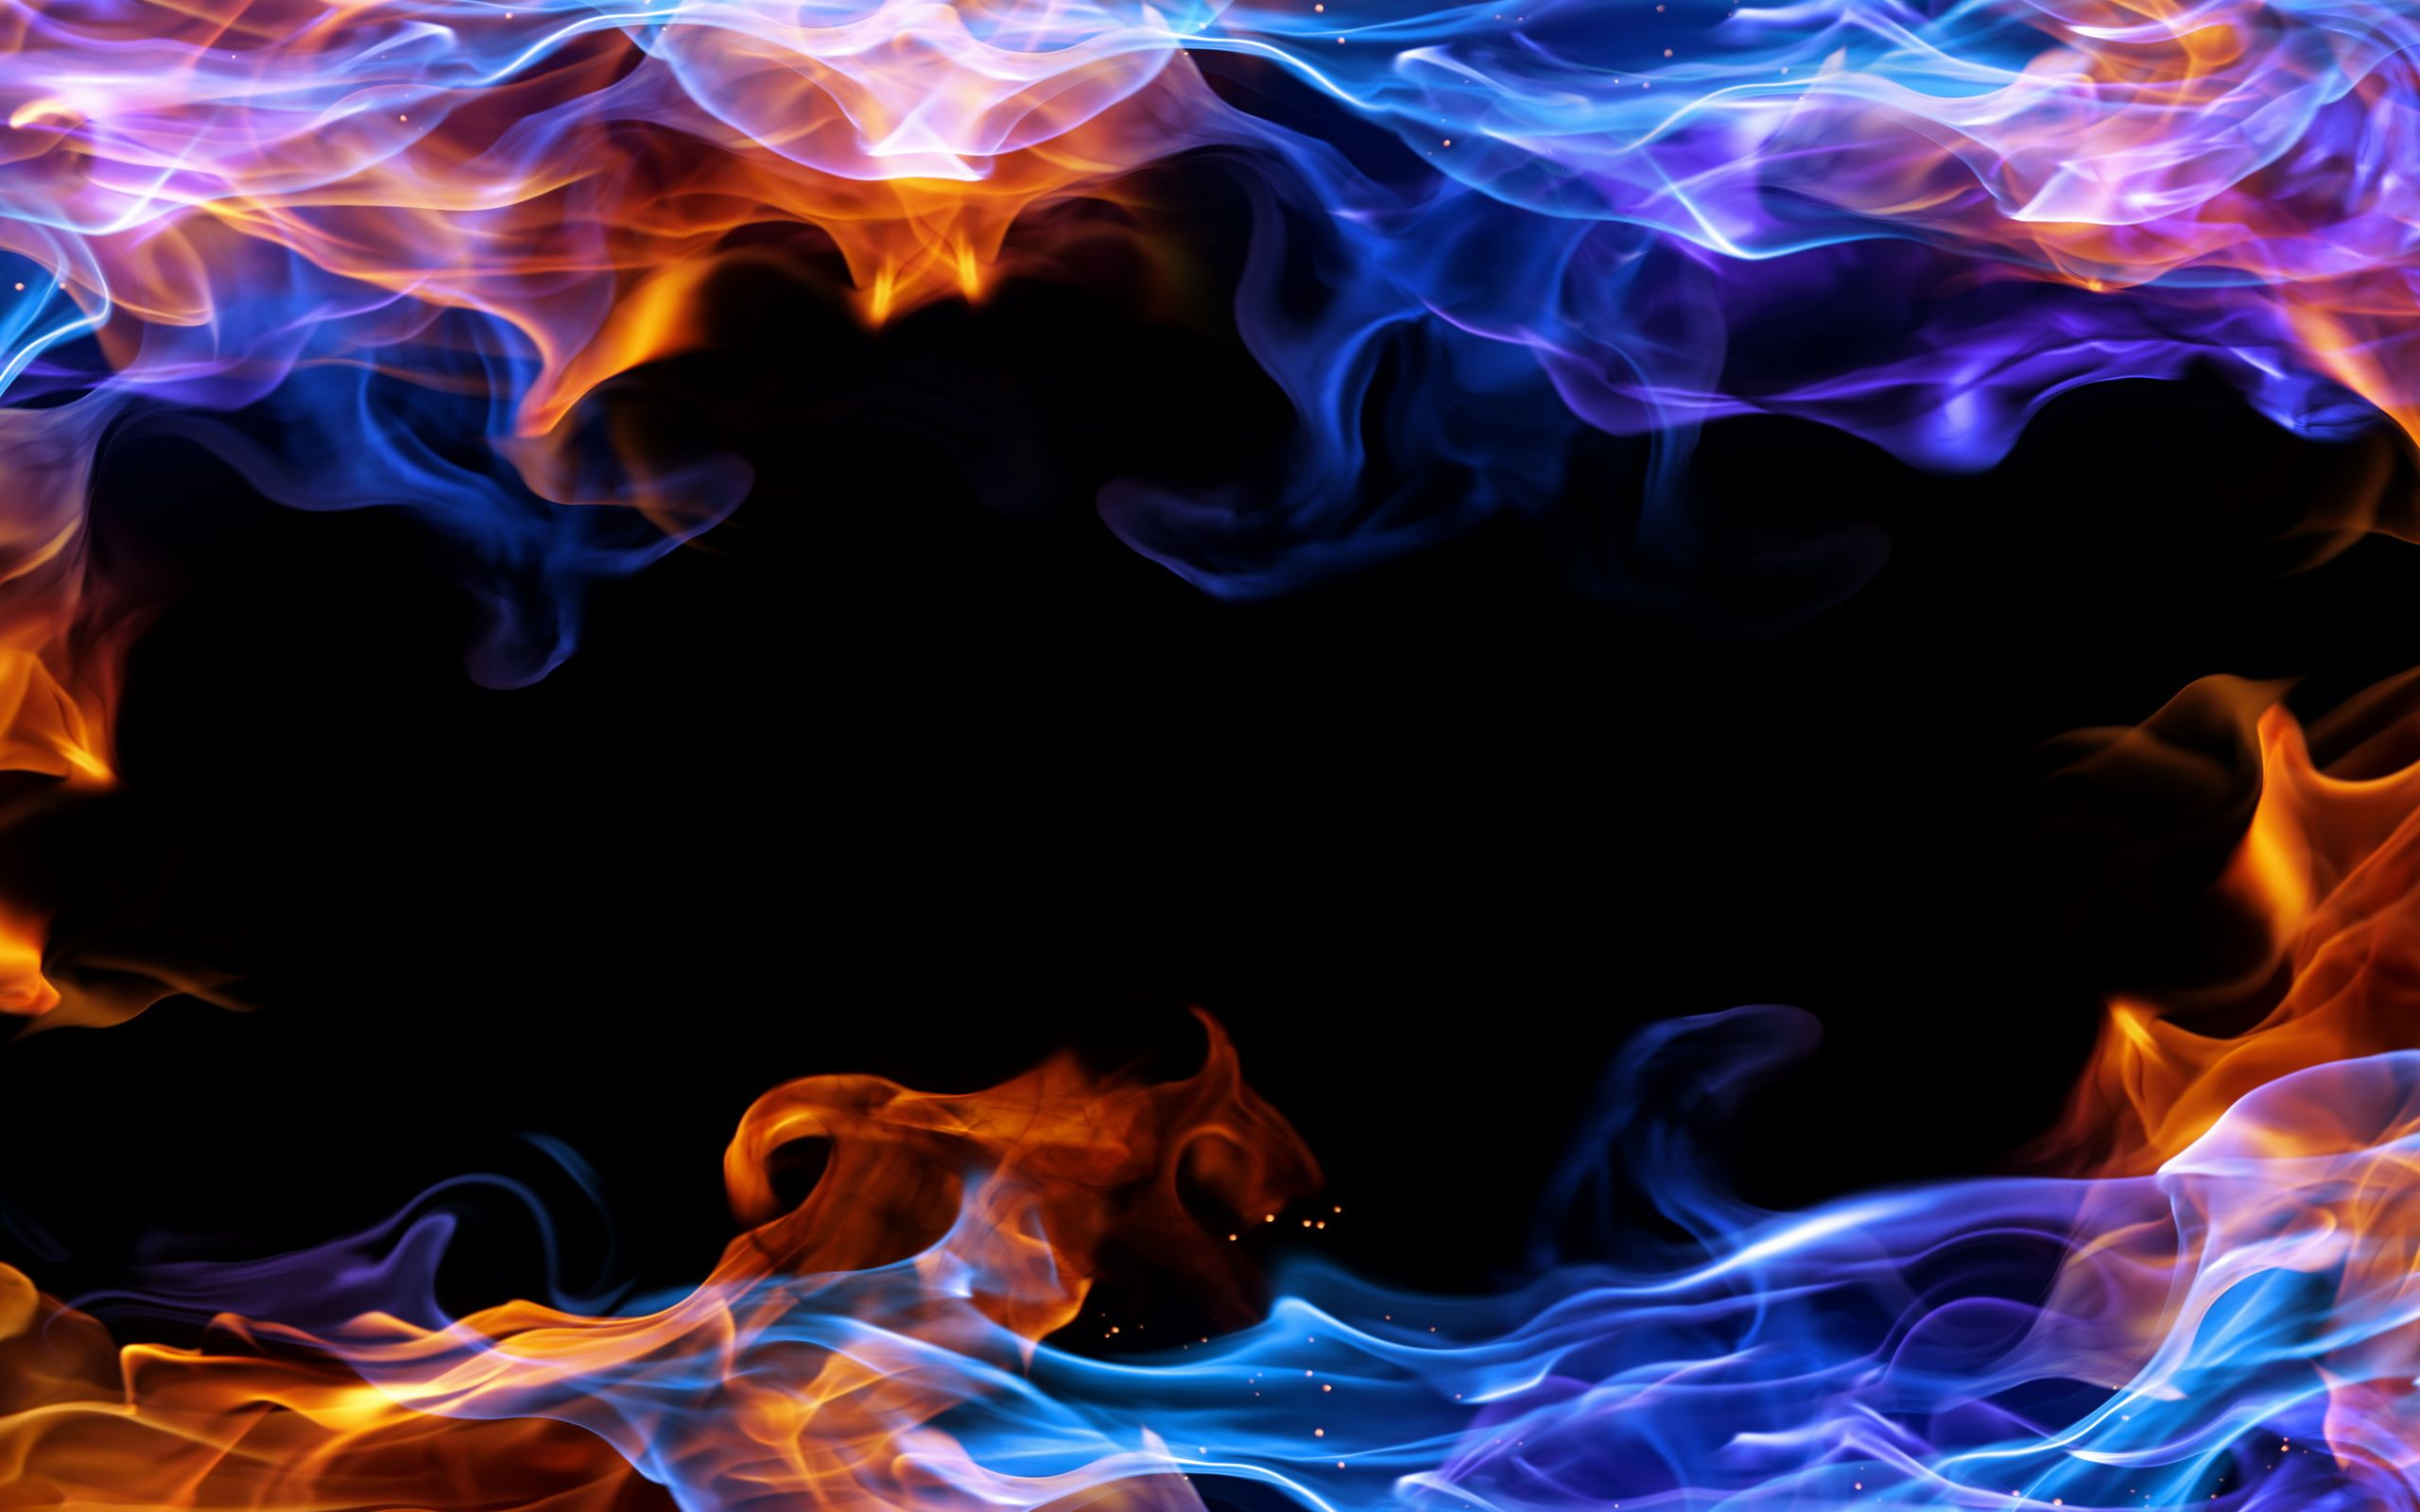 Image Result For Vector Images In Photoshop Flames Border Smoke Background Fire Image Fire Art